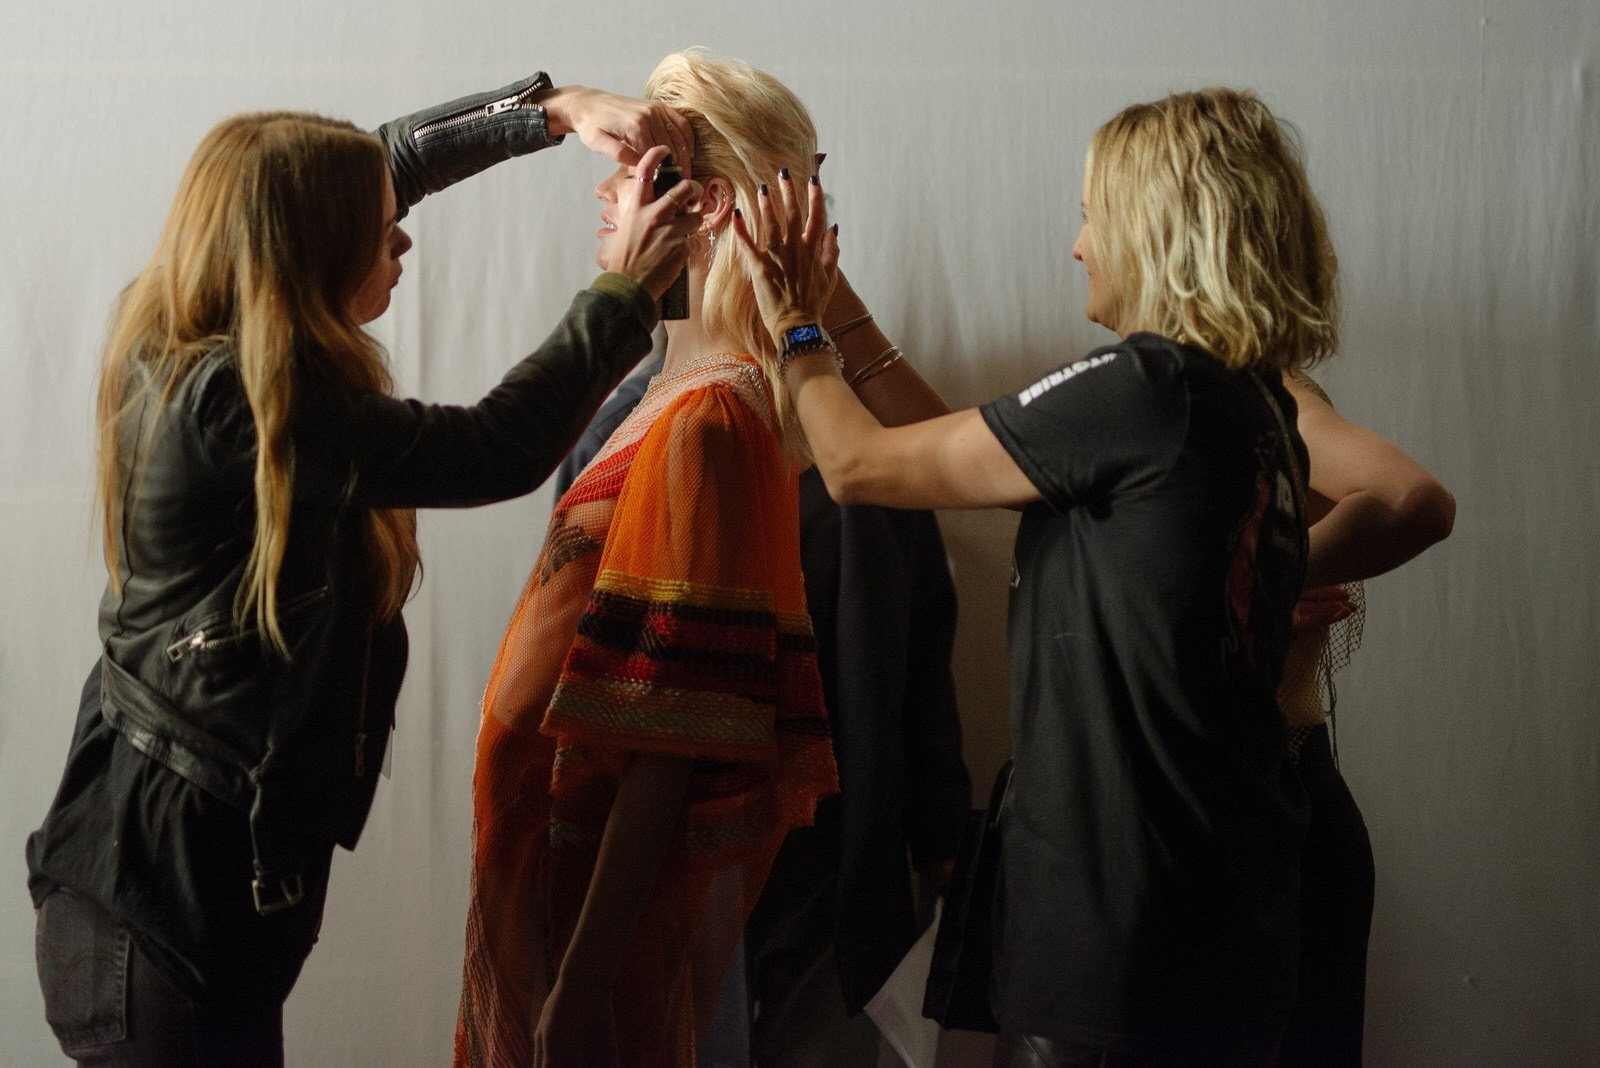 Back stage preparation for the Of Ro runway at MBFWA